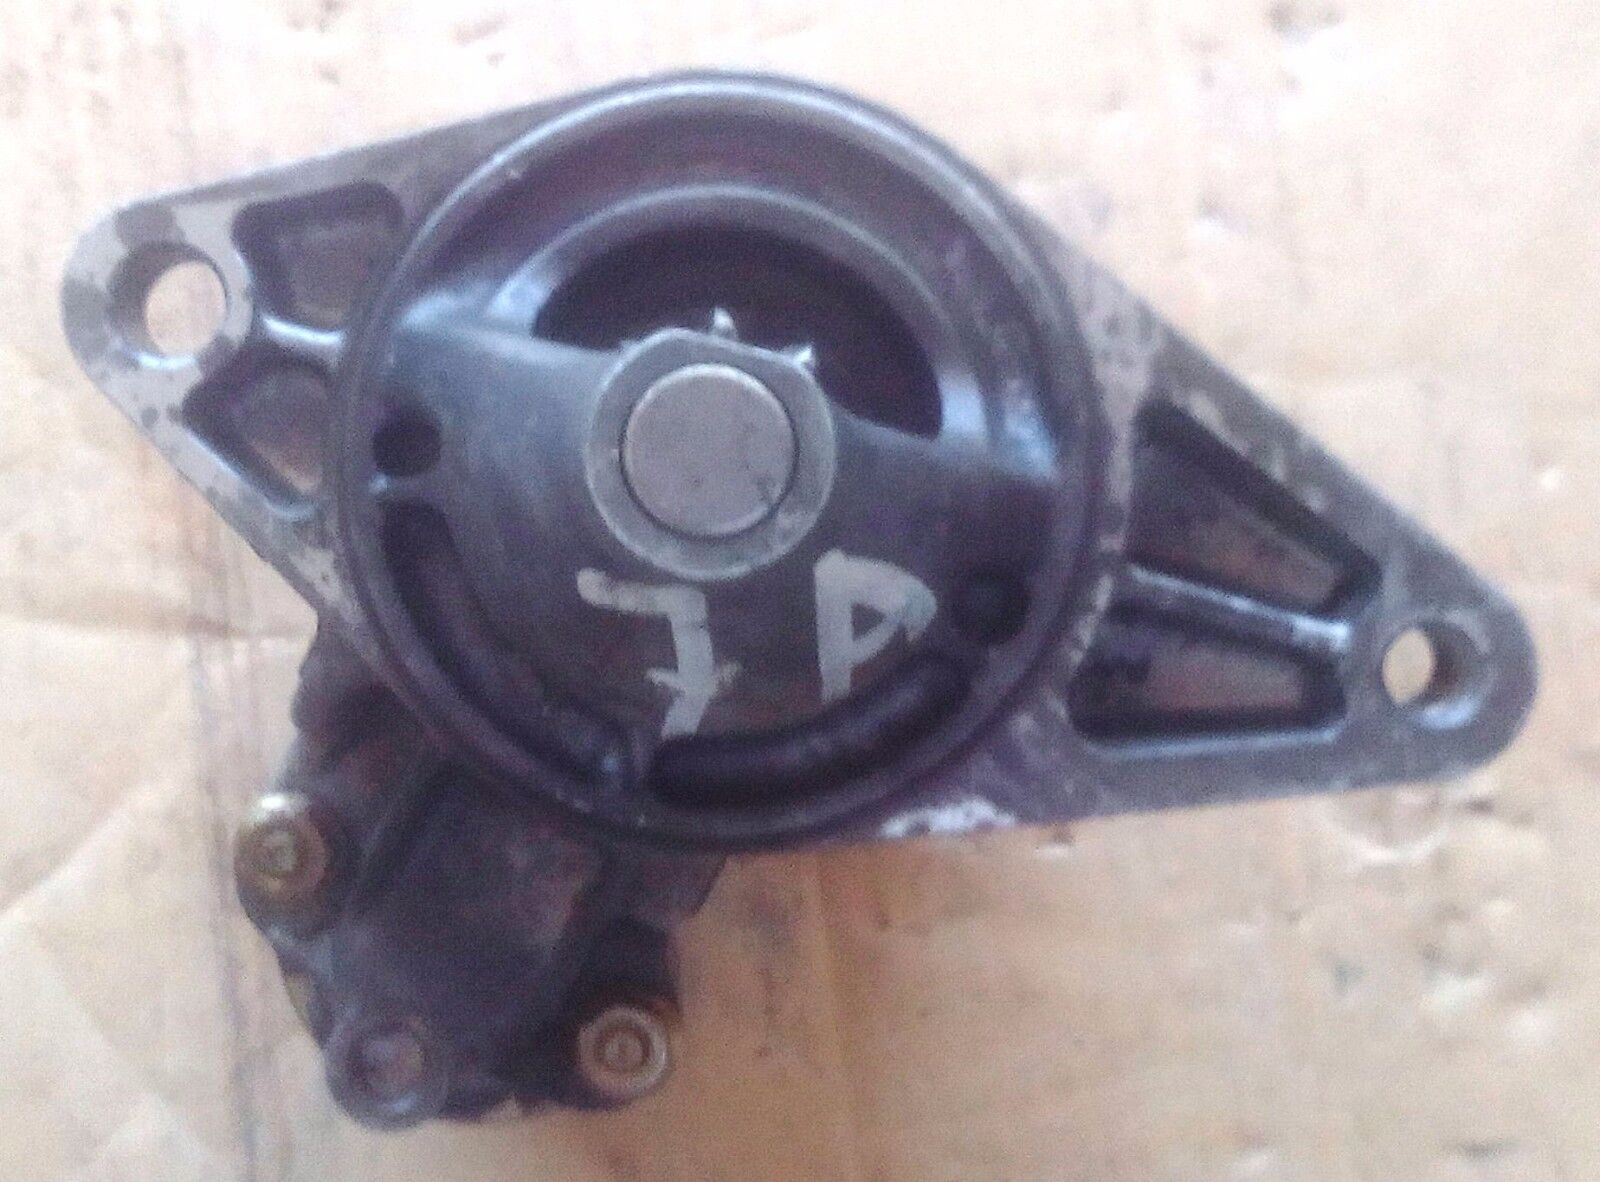 TOYOTA STARTER 7A FE PETROL WITH 9 SPLINES OEN 28100 16230 USED NP 228000 2900